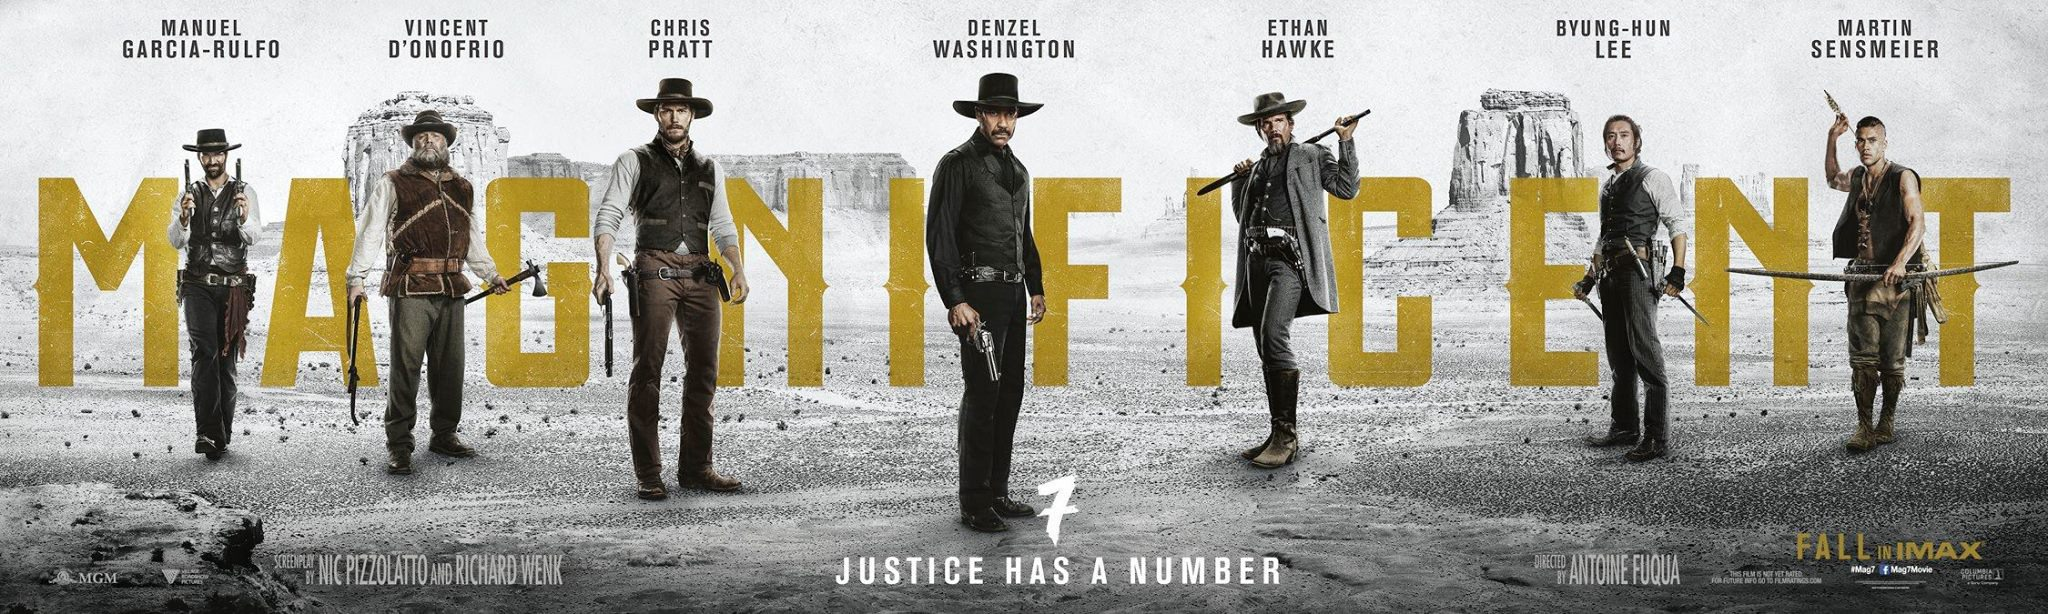 Image result for poster for the magnificent seven 2016